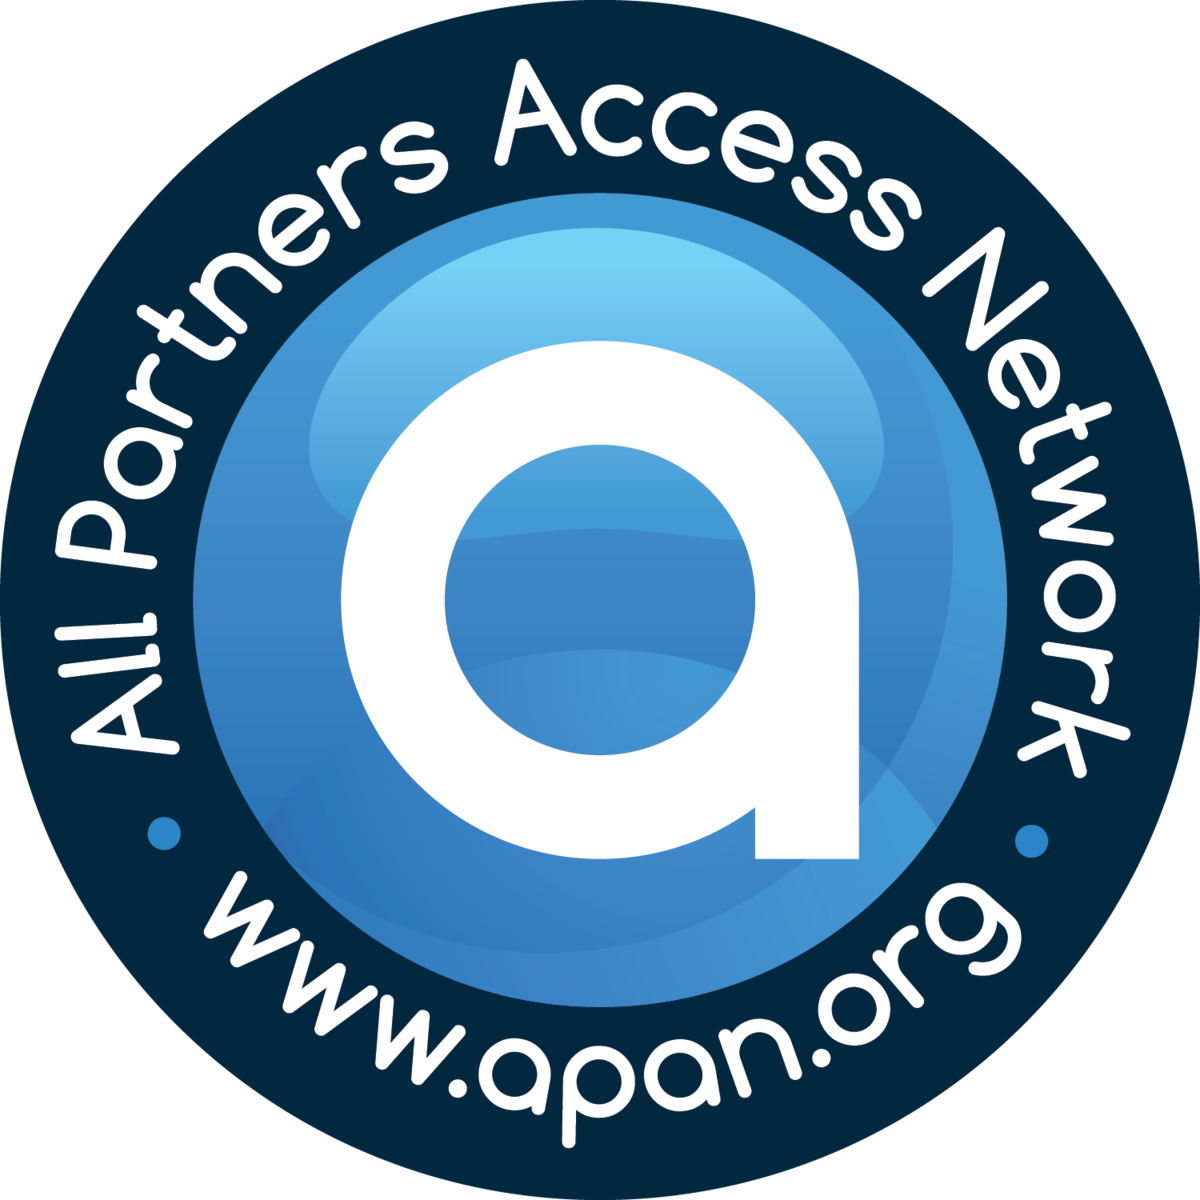 All Partners Access Network Wikipedia